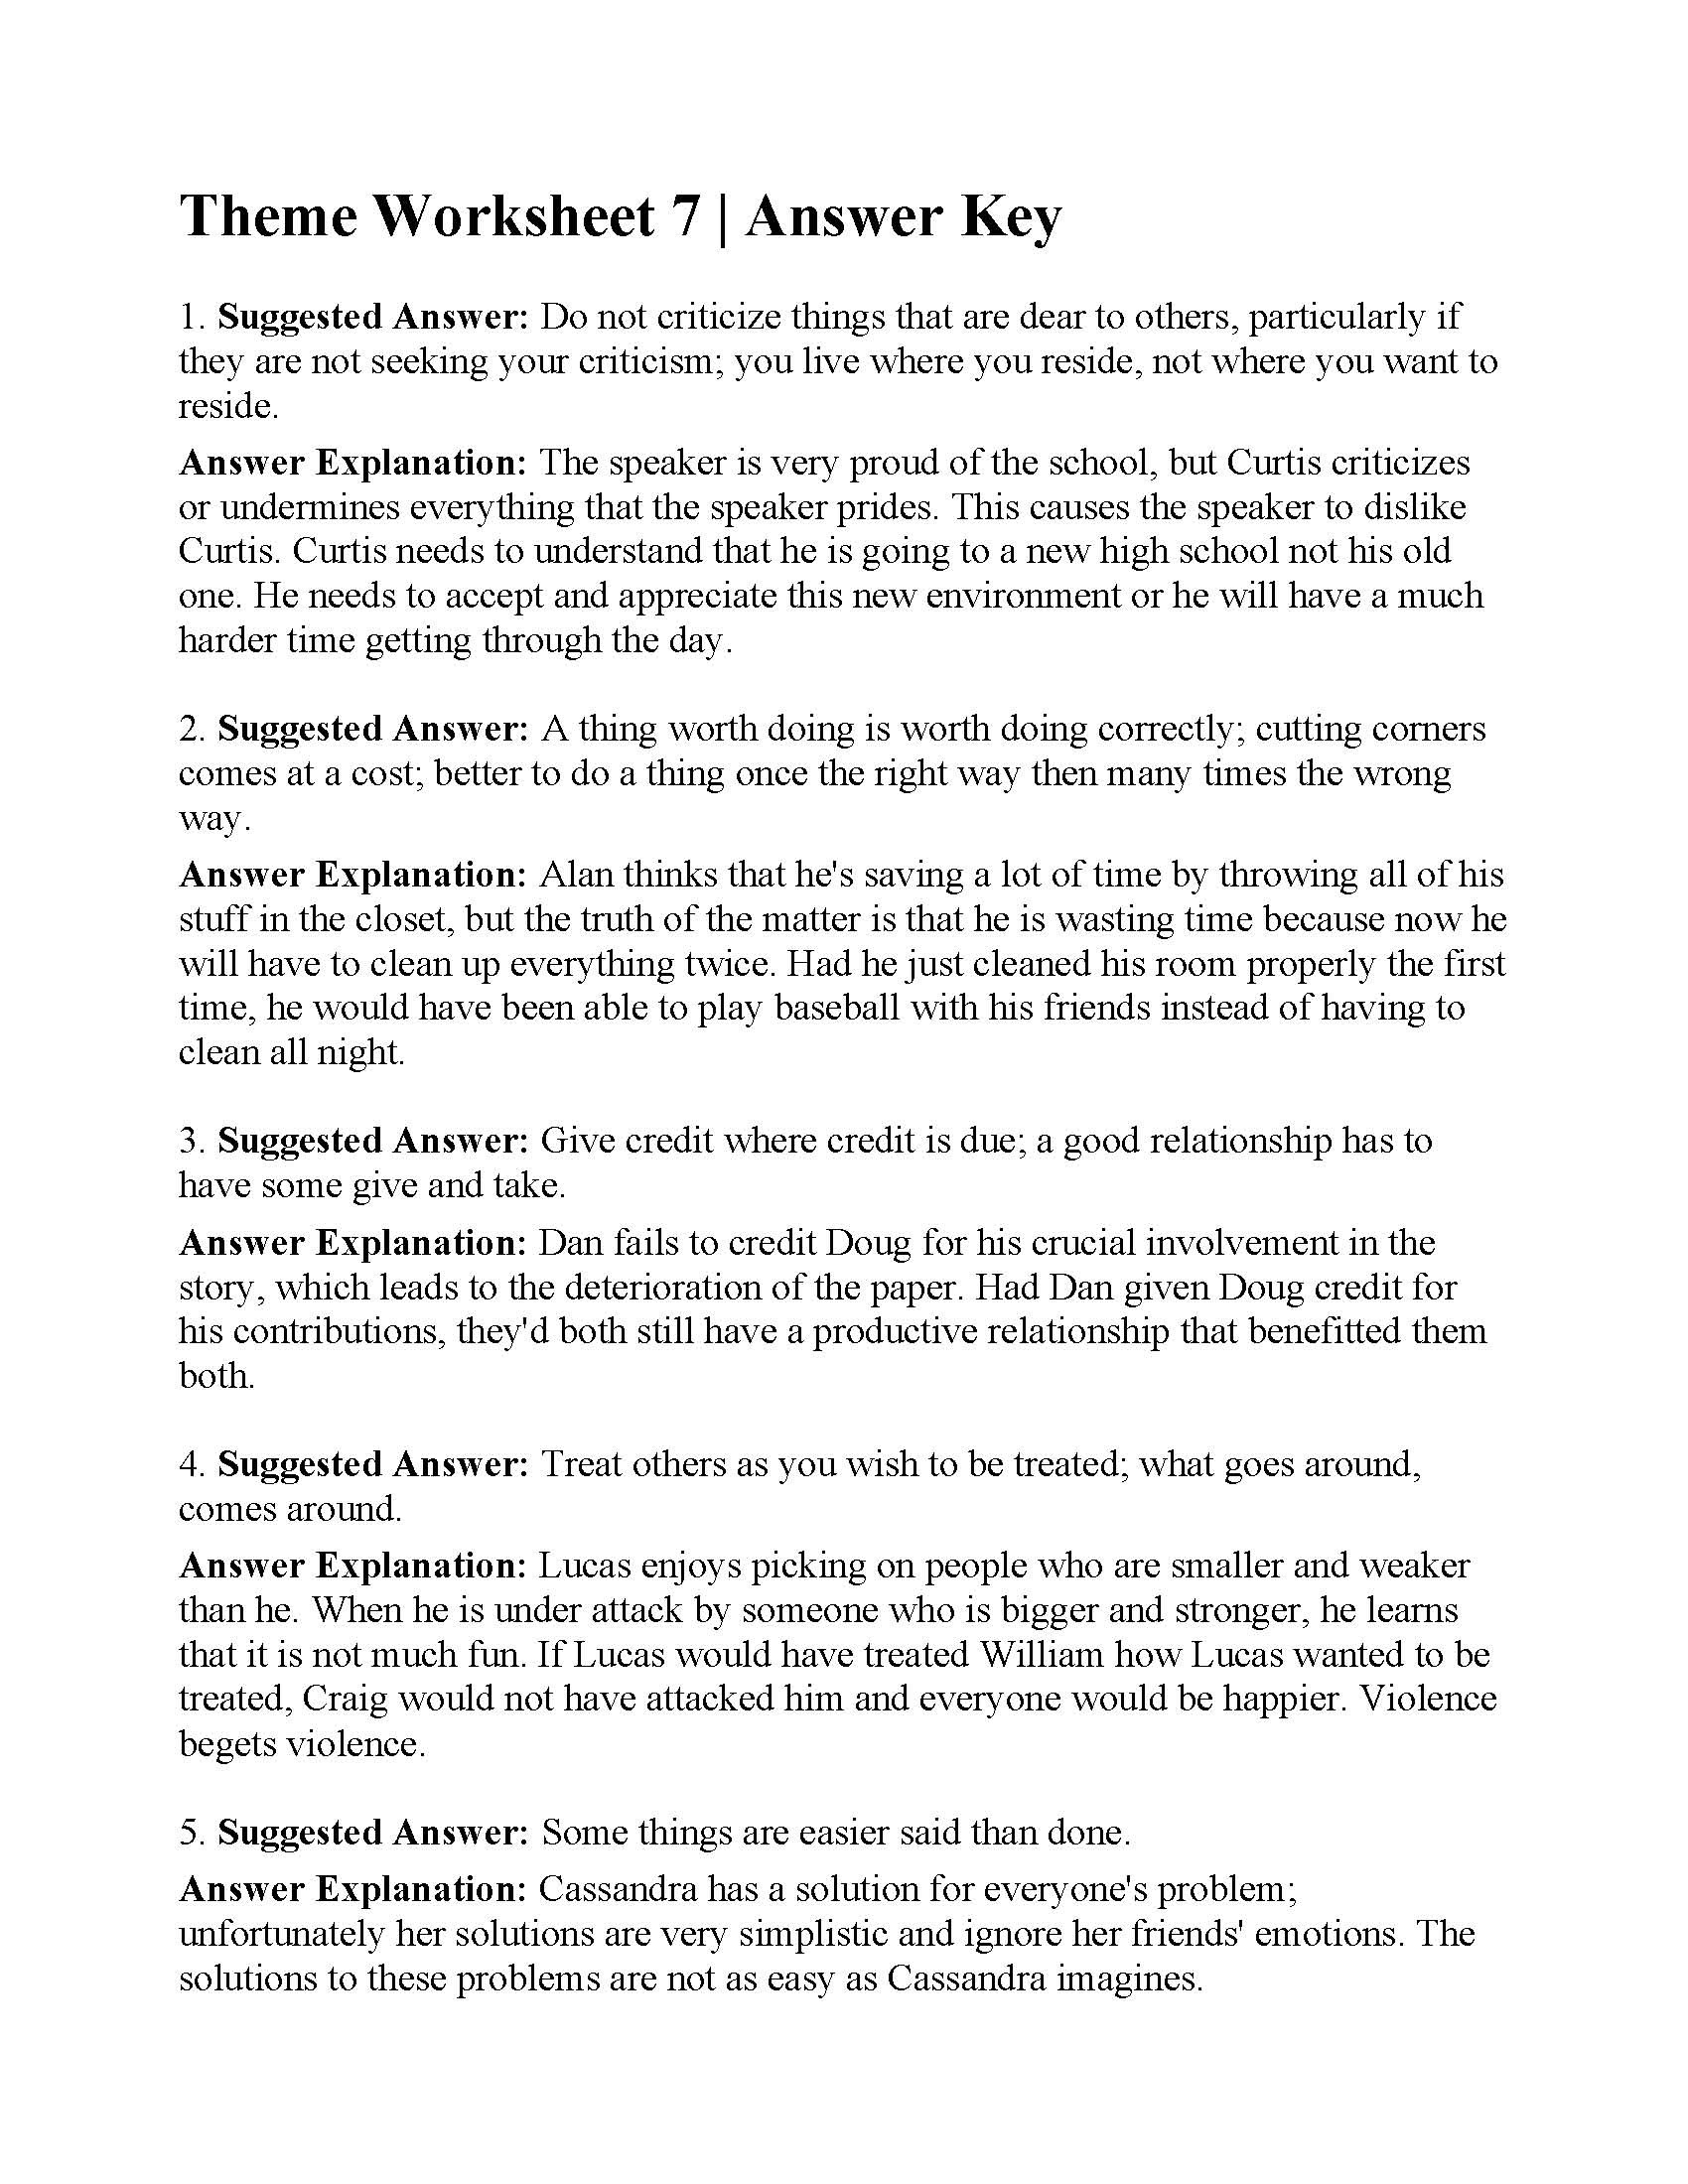 Theme Worksheets High School theme Worksheet 7